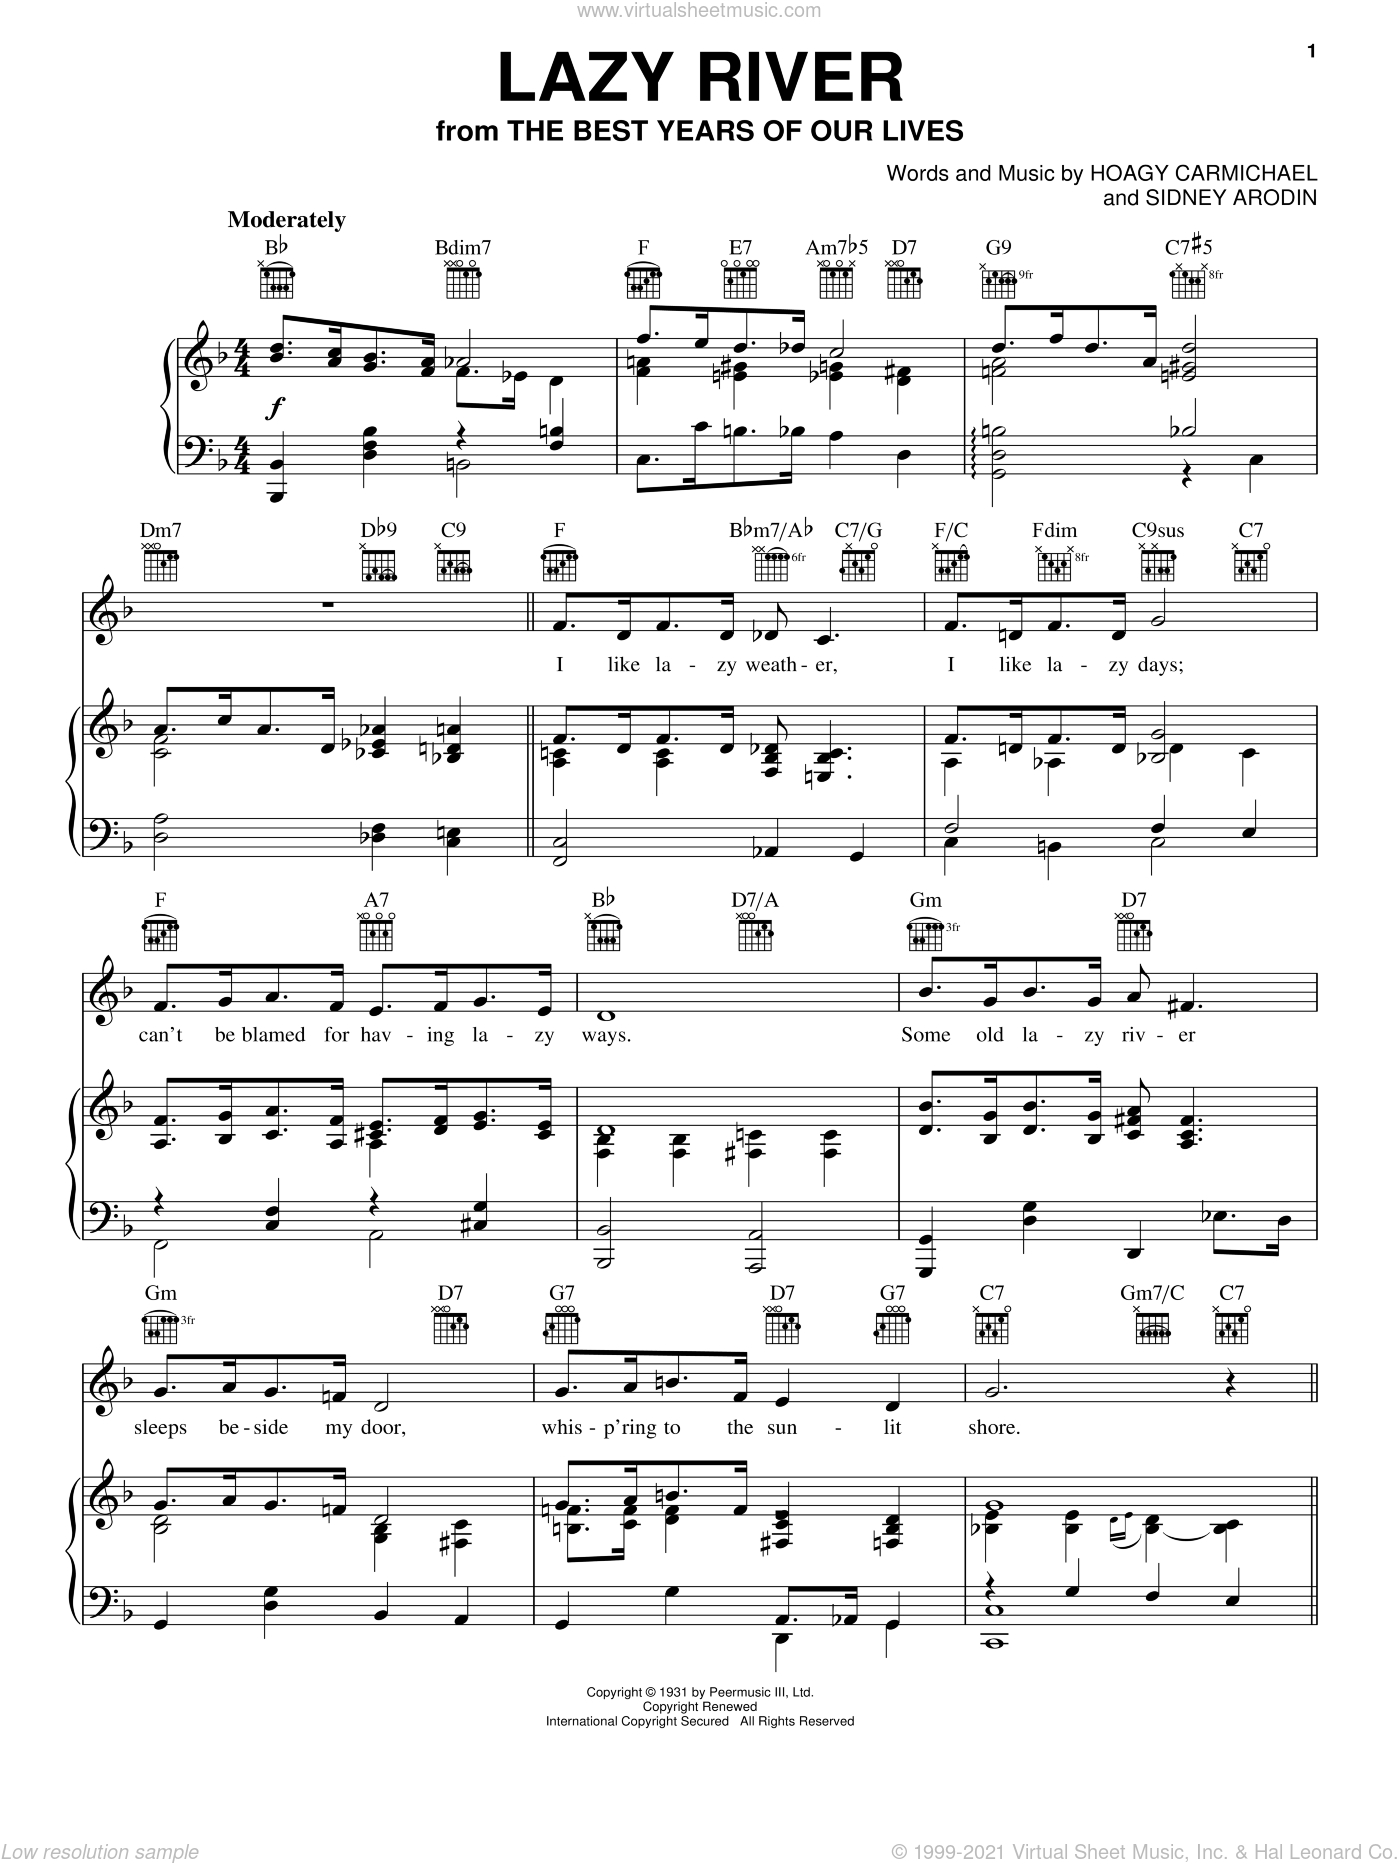 Lazy River sheet music for voice, piano or guitar by Sidney Arodin